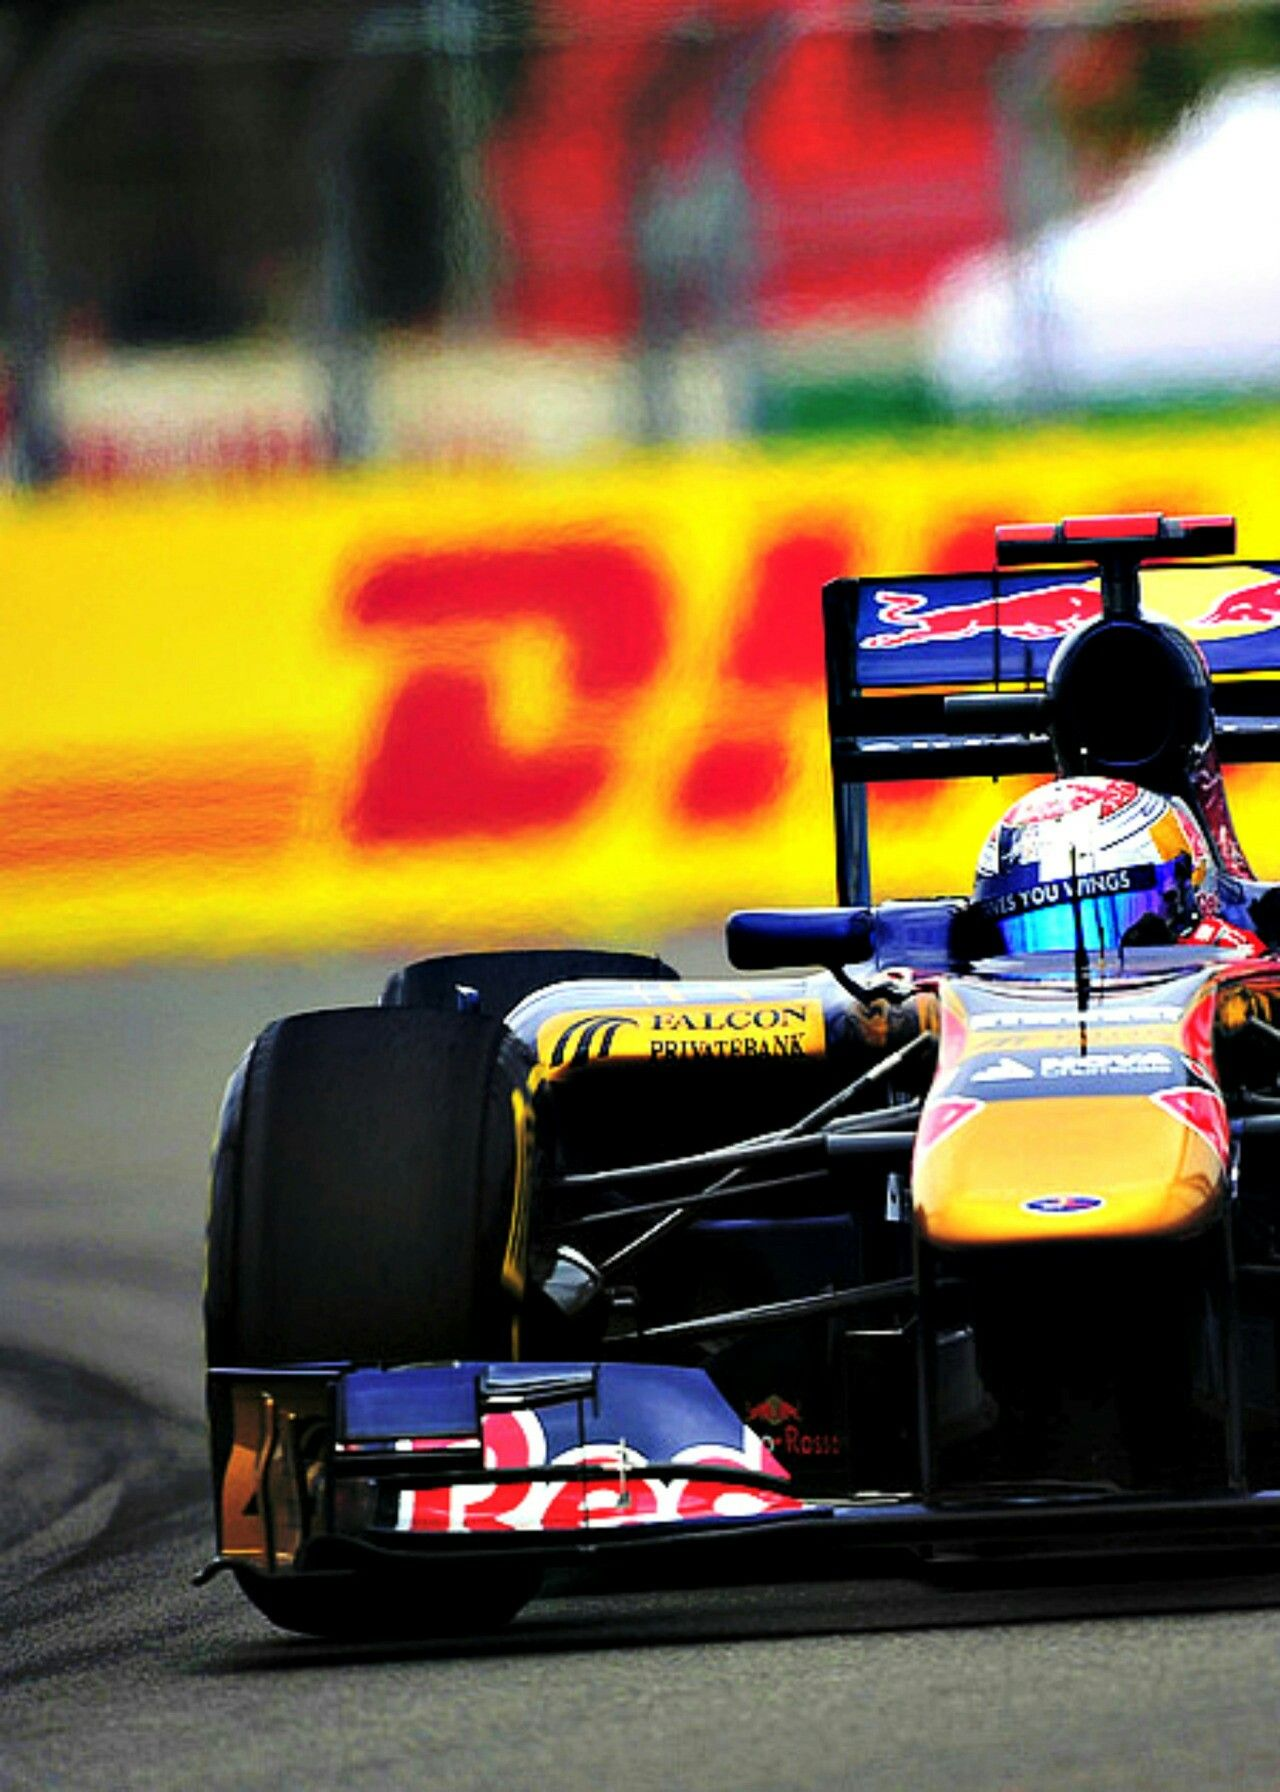 Red bull racing redbull sports pinterest red bull red and racing